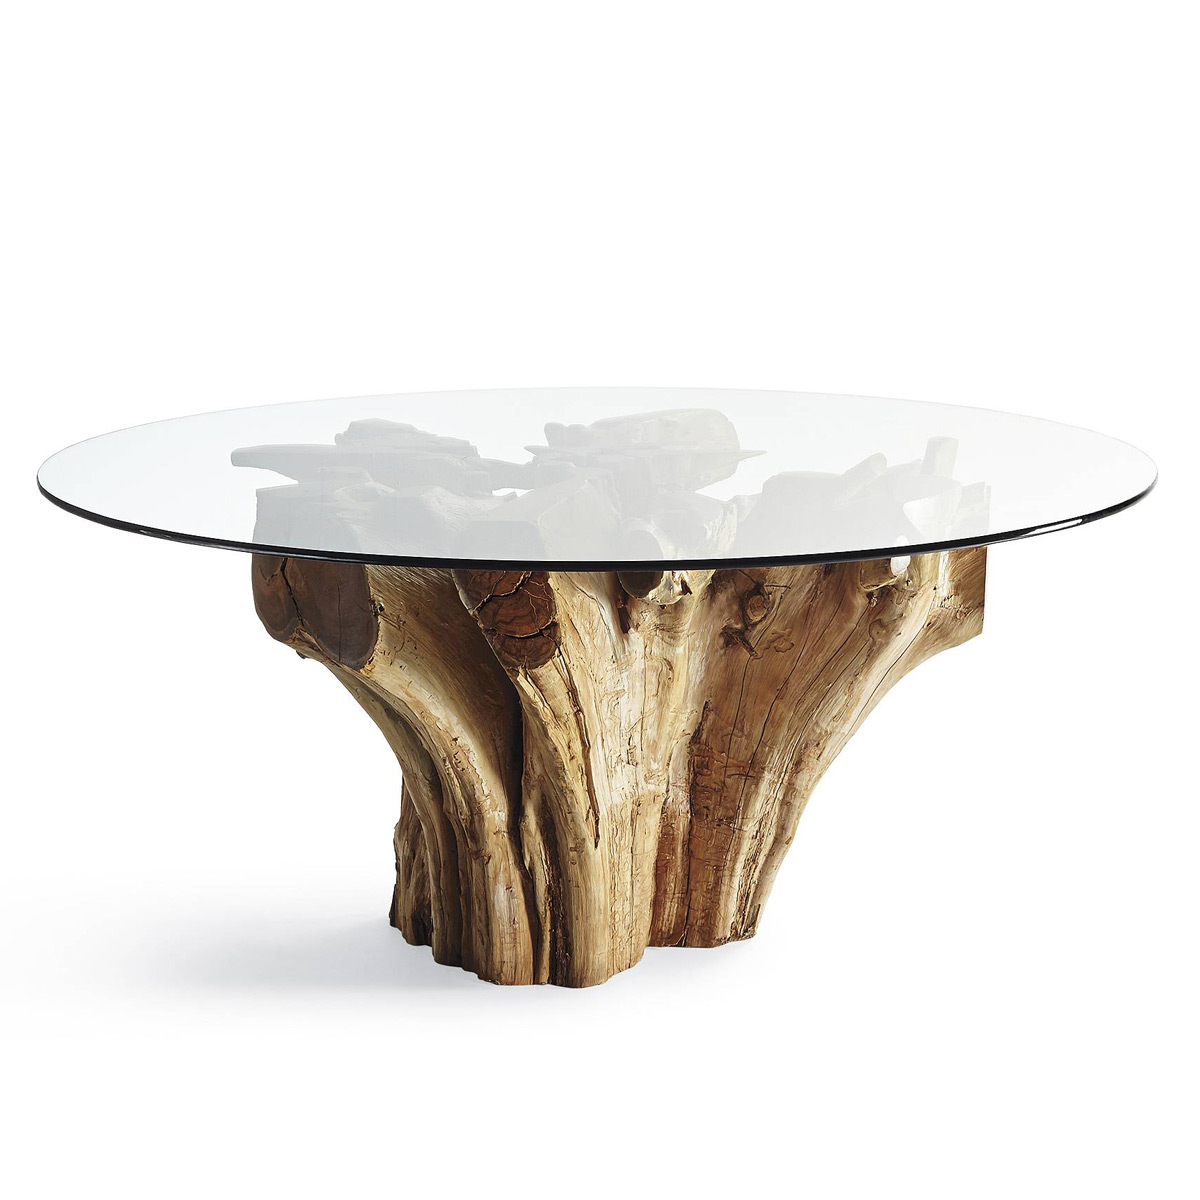 Majestic Teak Root Dining Table - The Green Head